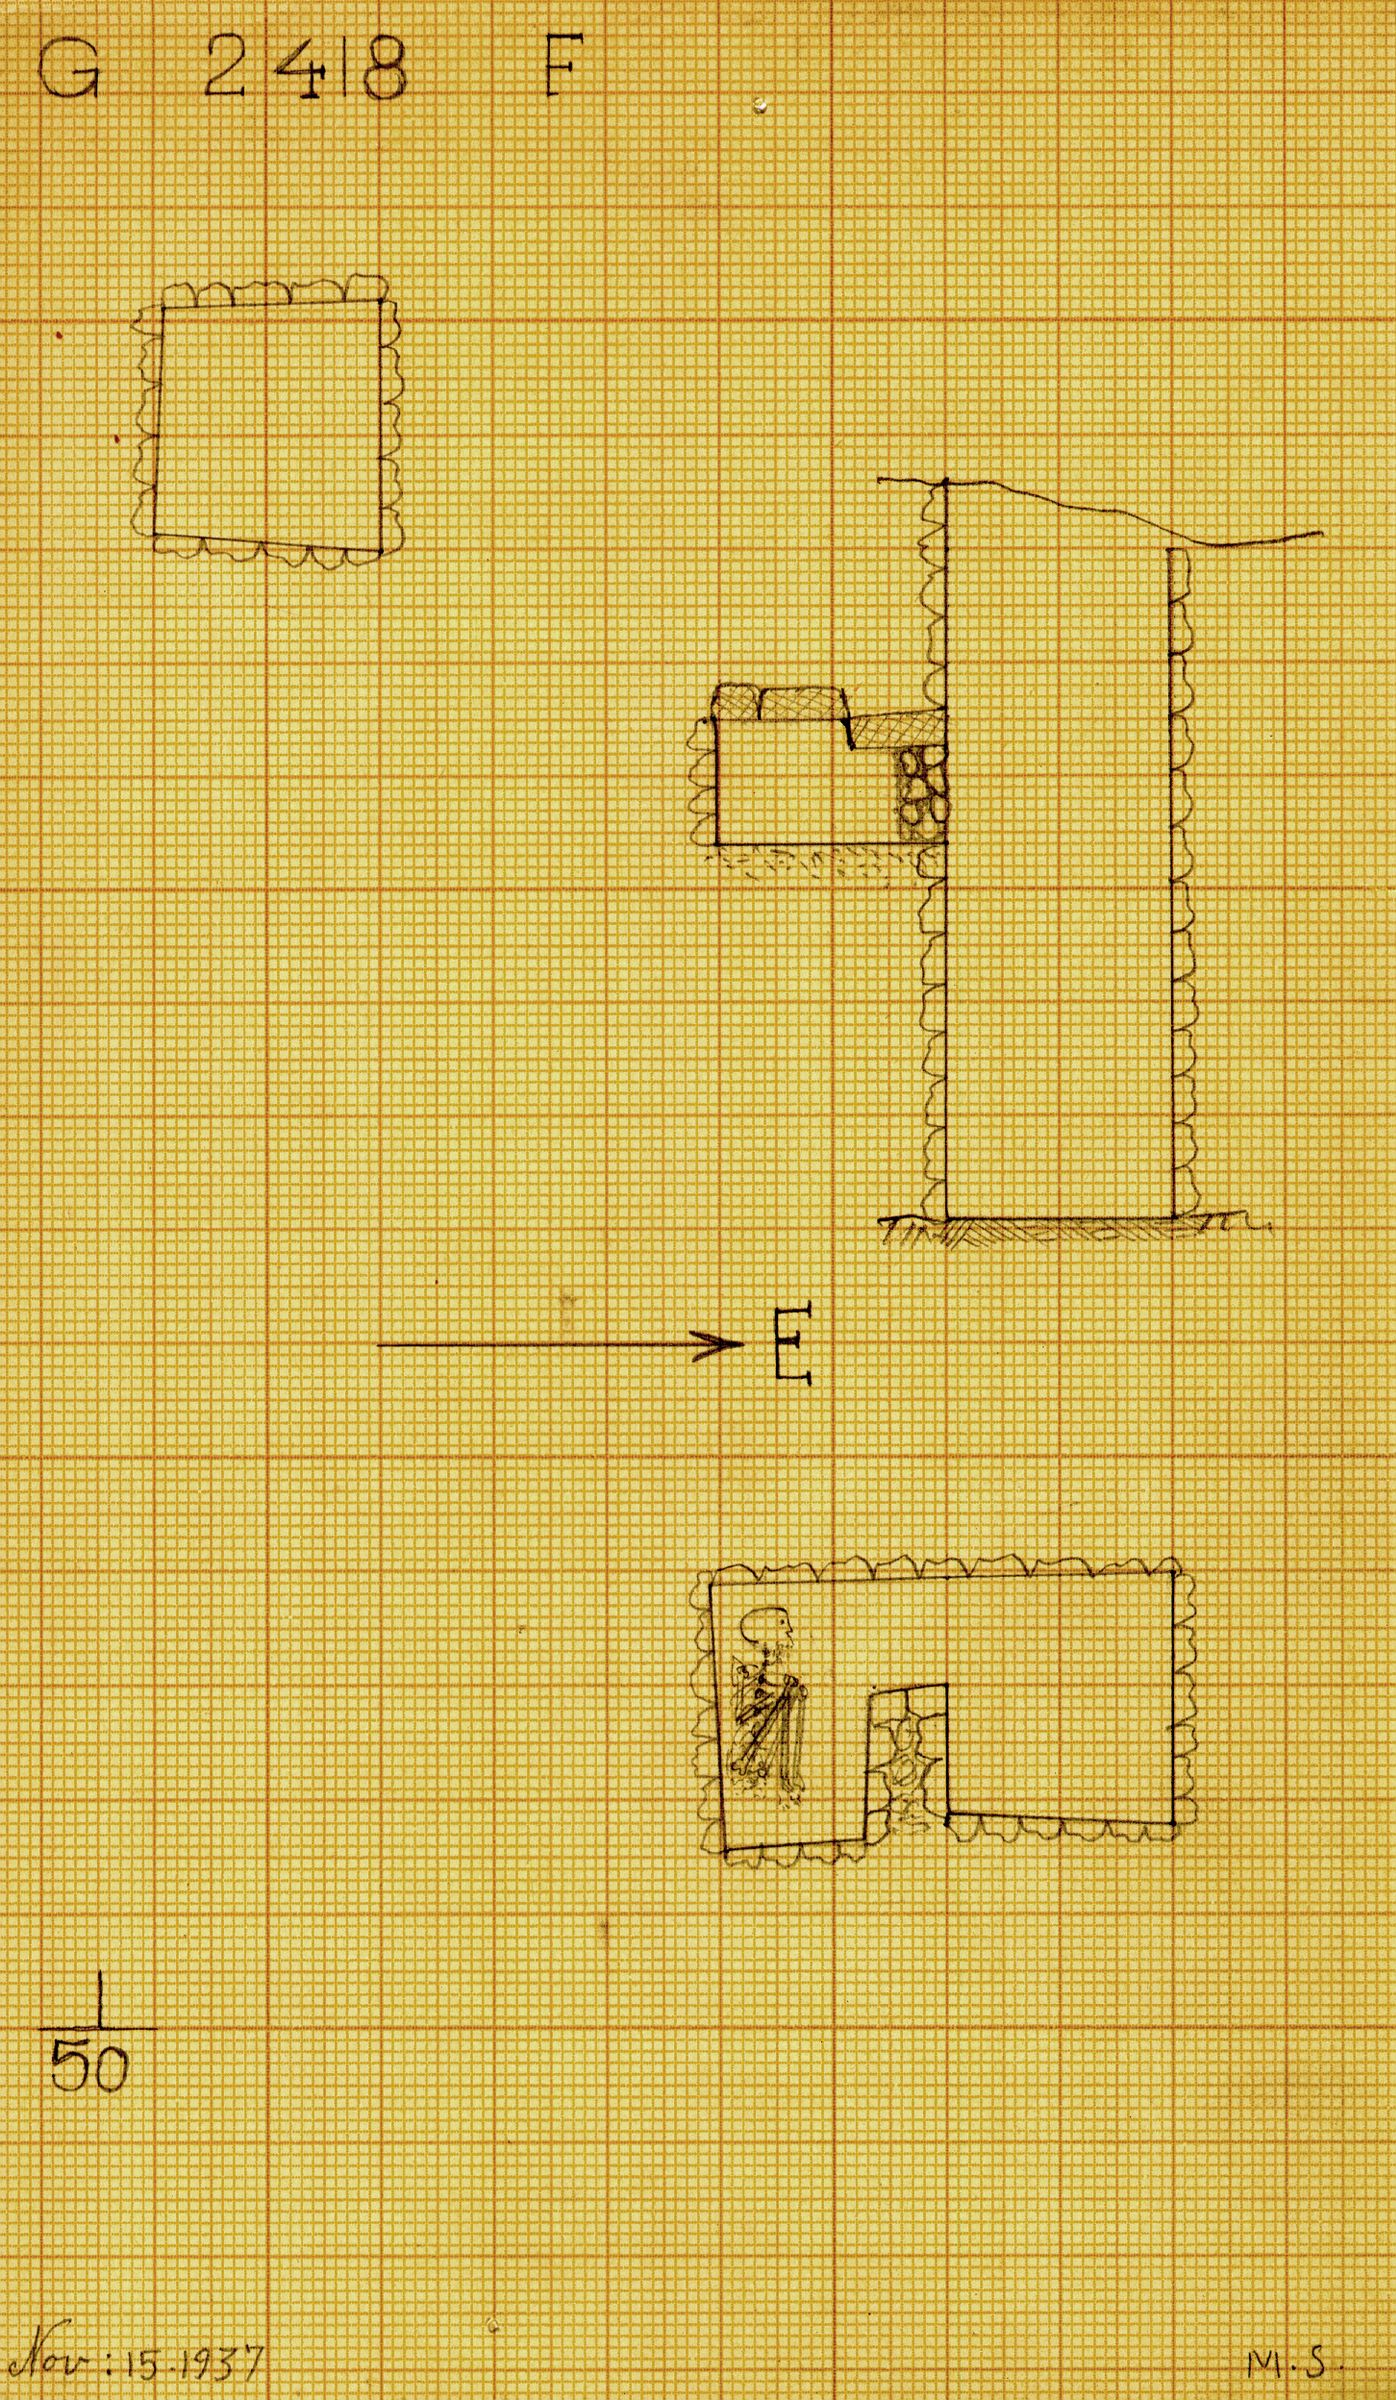 Maps and plans: G 2418, Shaft F